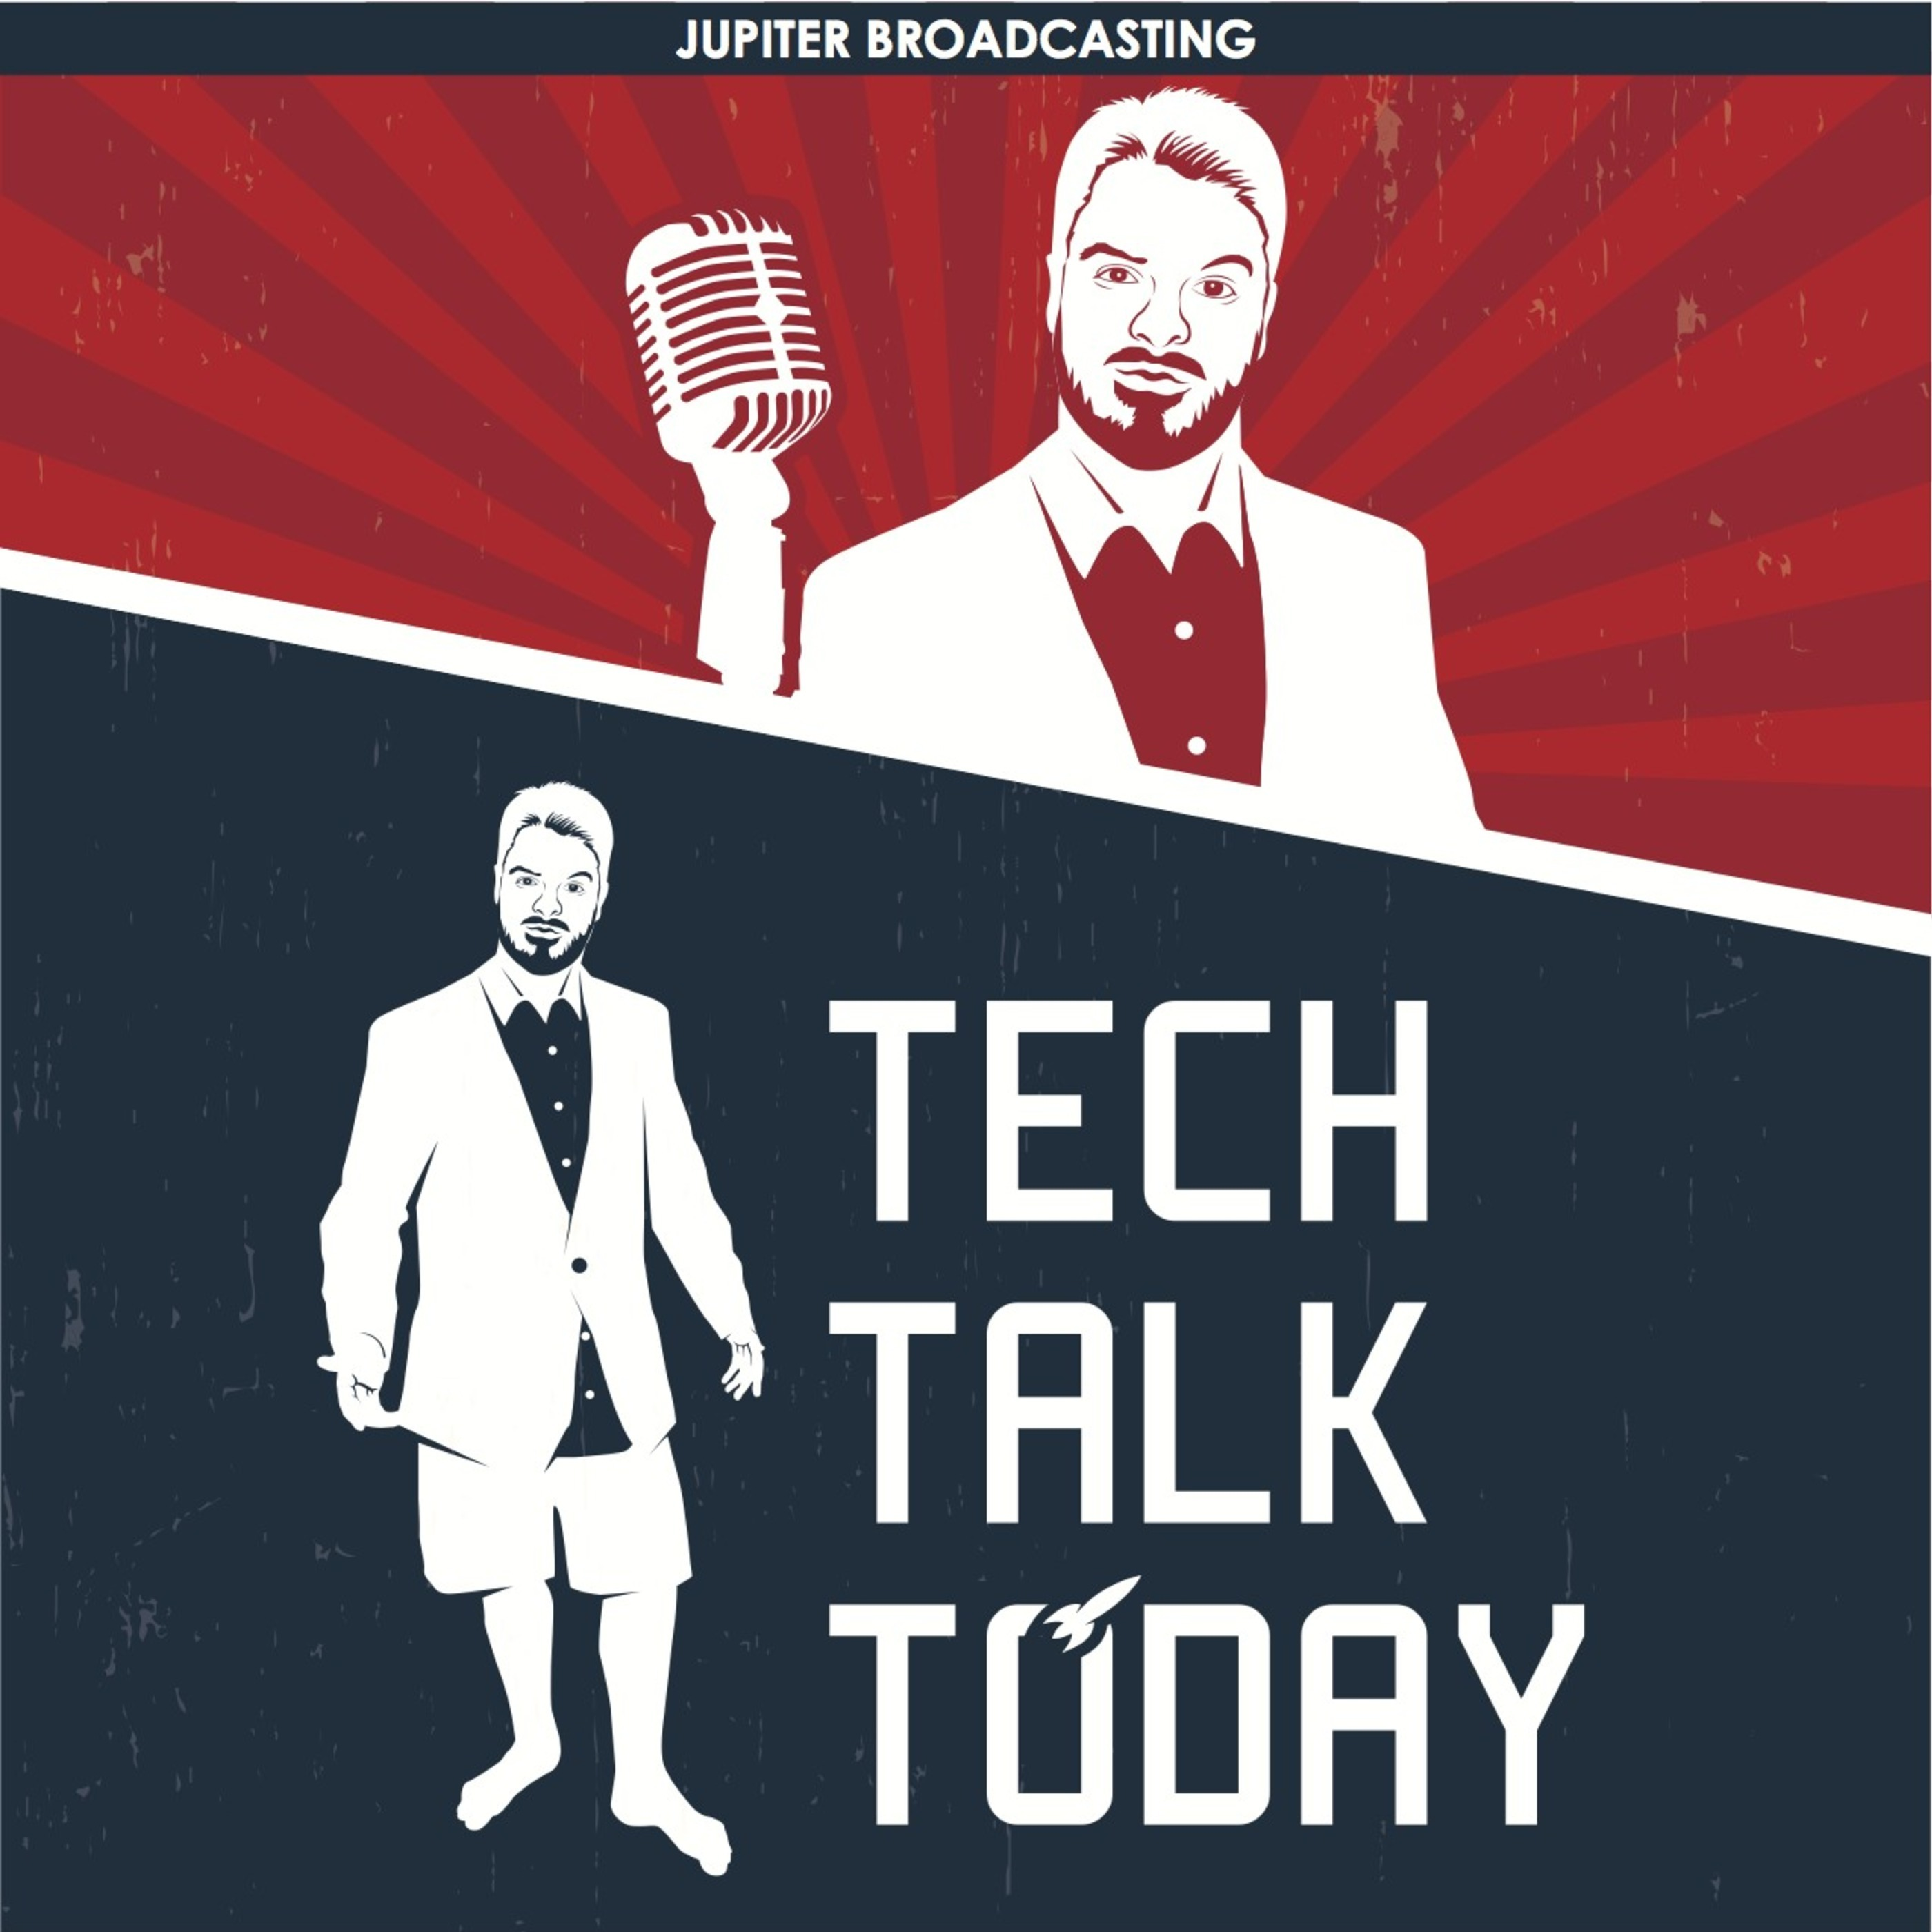 Episode 16: Hangouts On The Record | Tech Talk Today 169